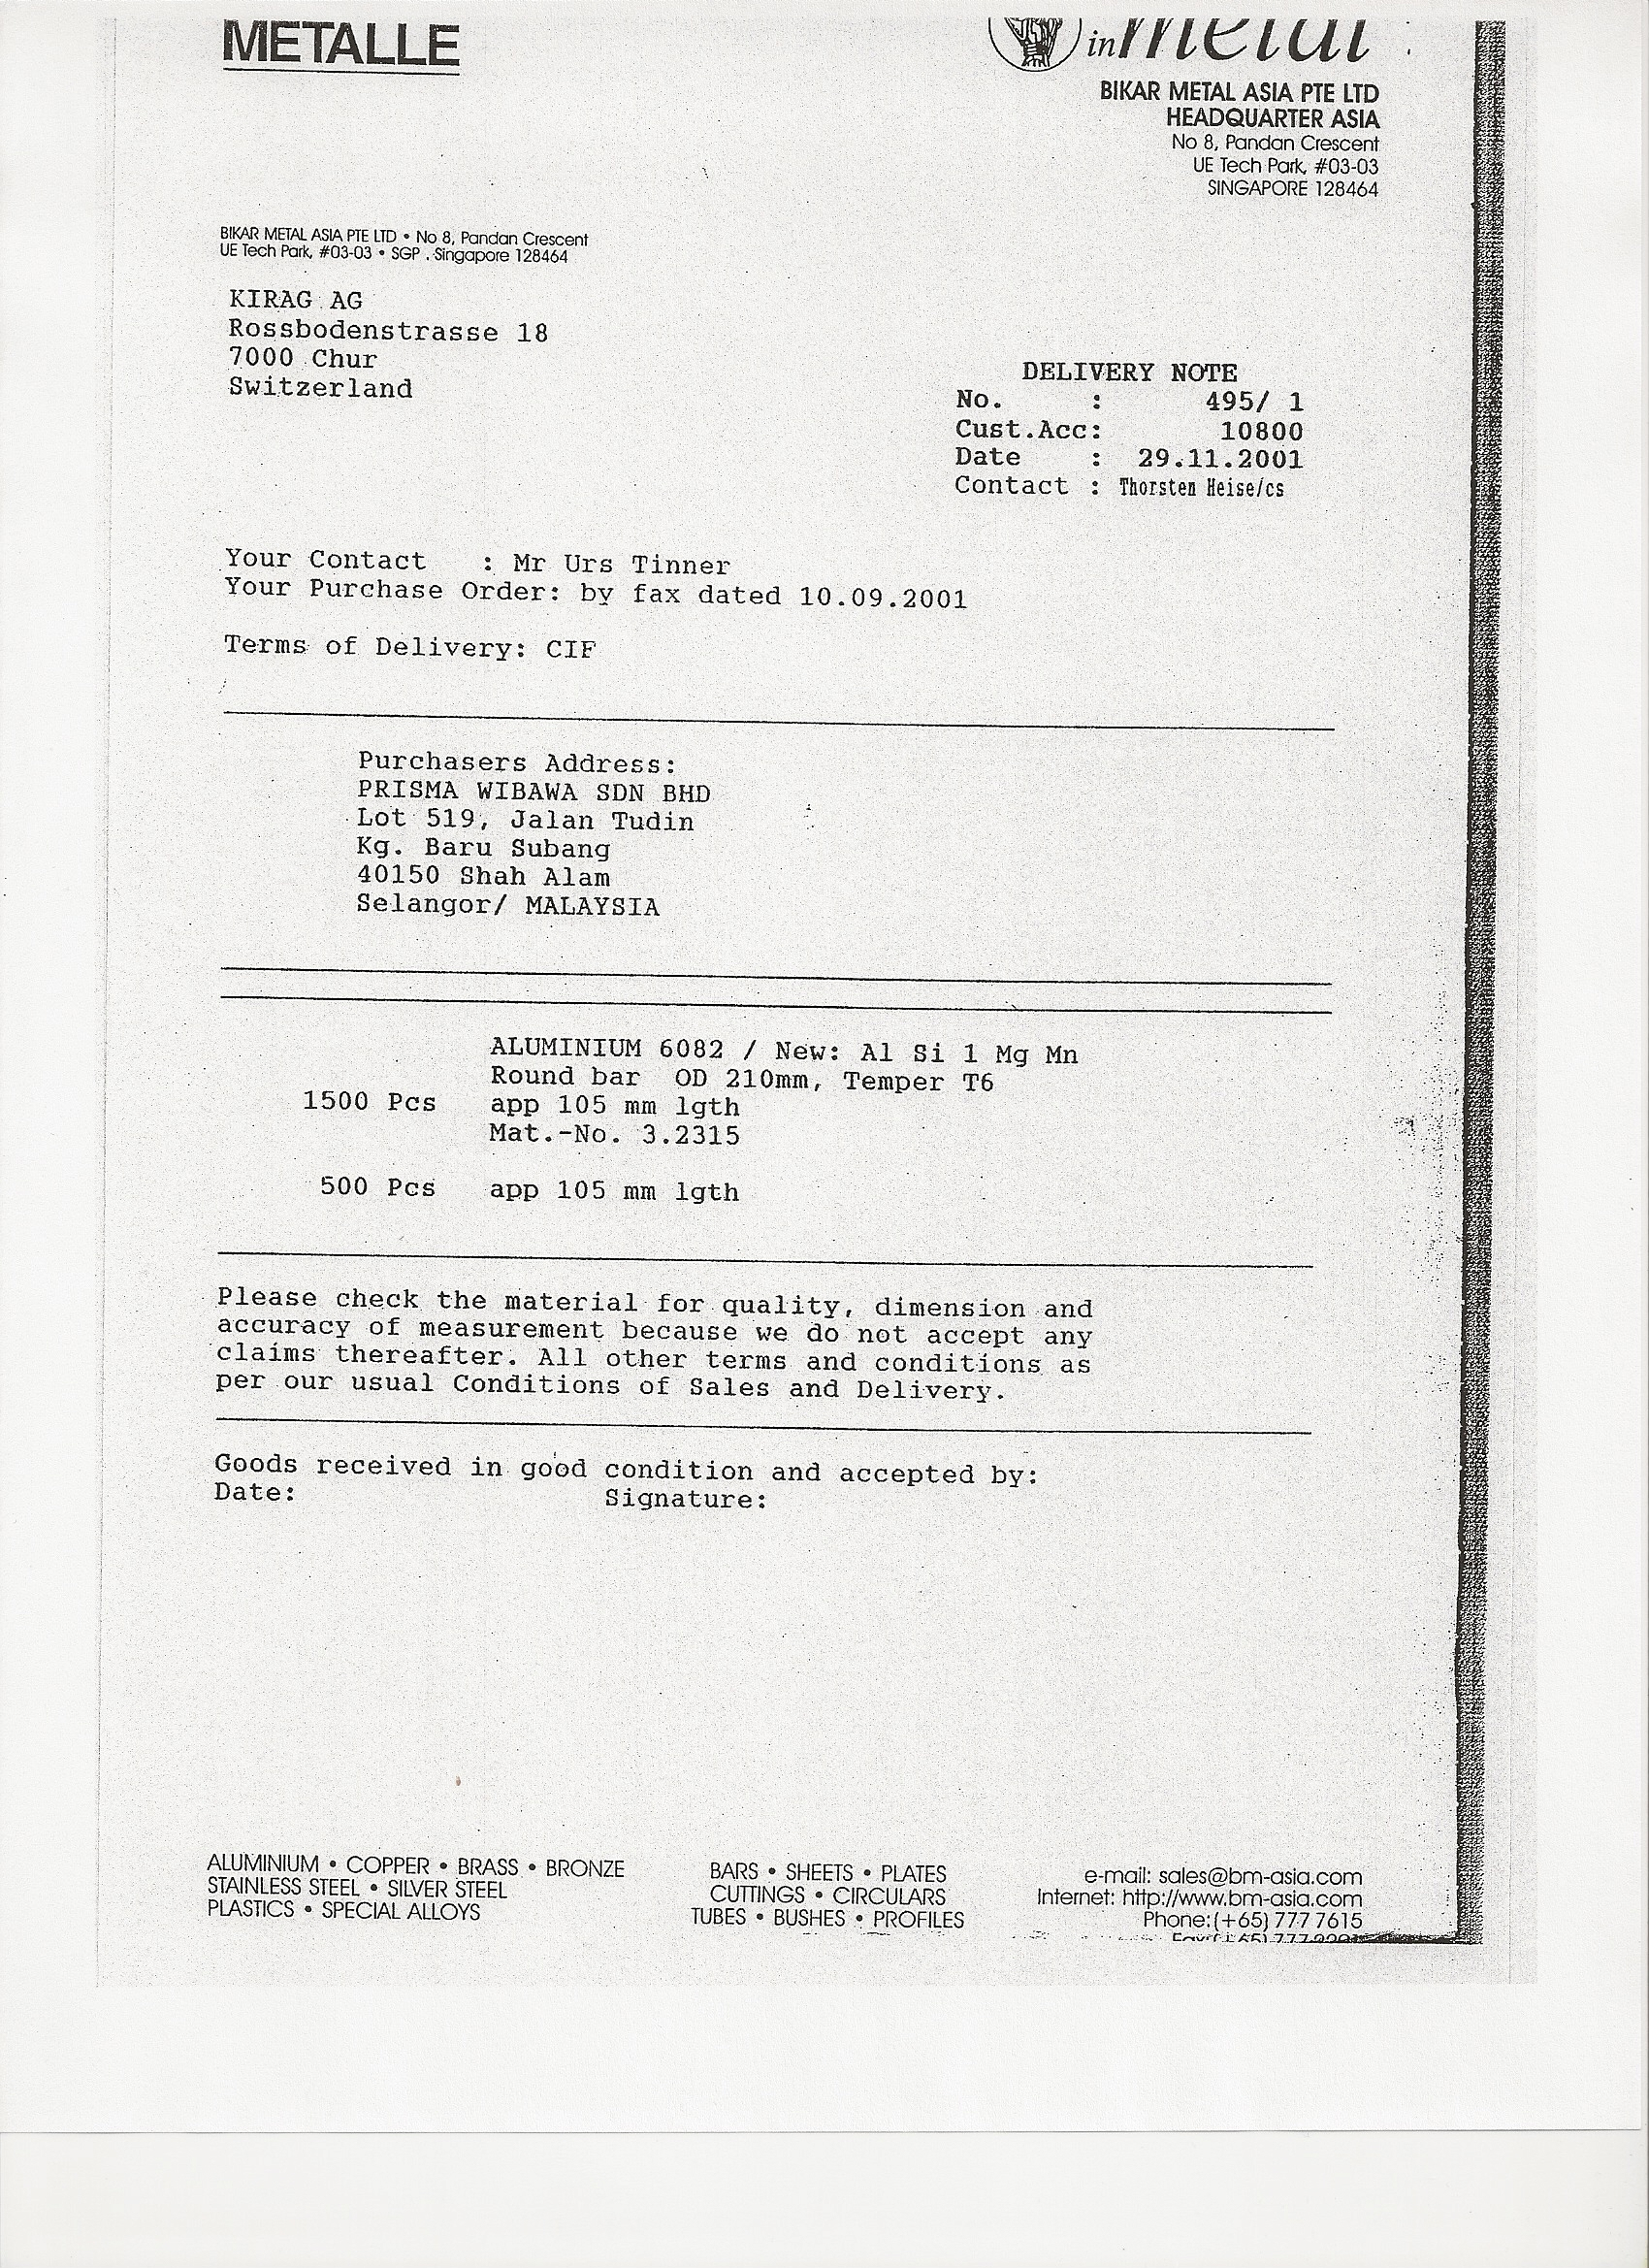 Goods received note format loi template tolgjcmanagementco 75 goods received note format institute for science and international security 87 altavistaventures Image collections